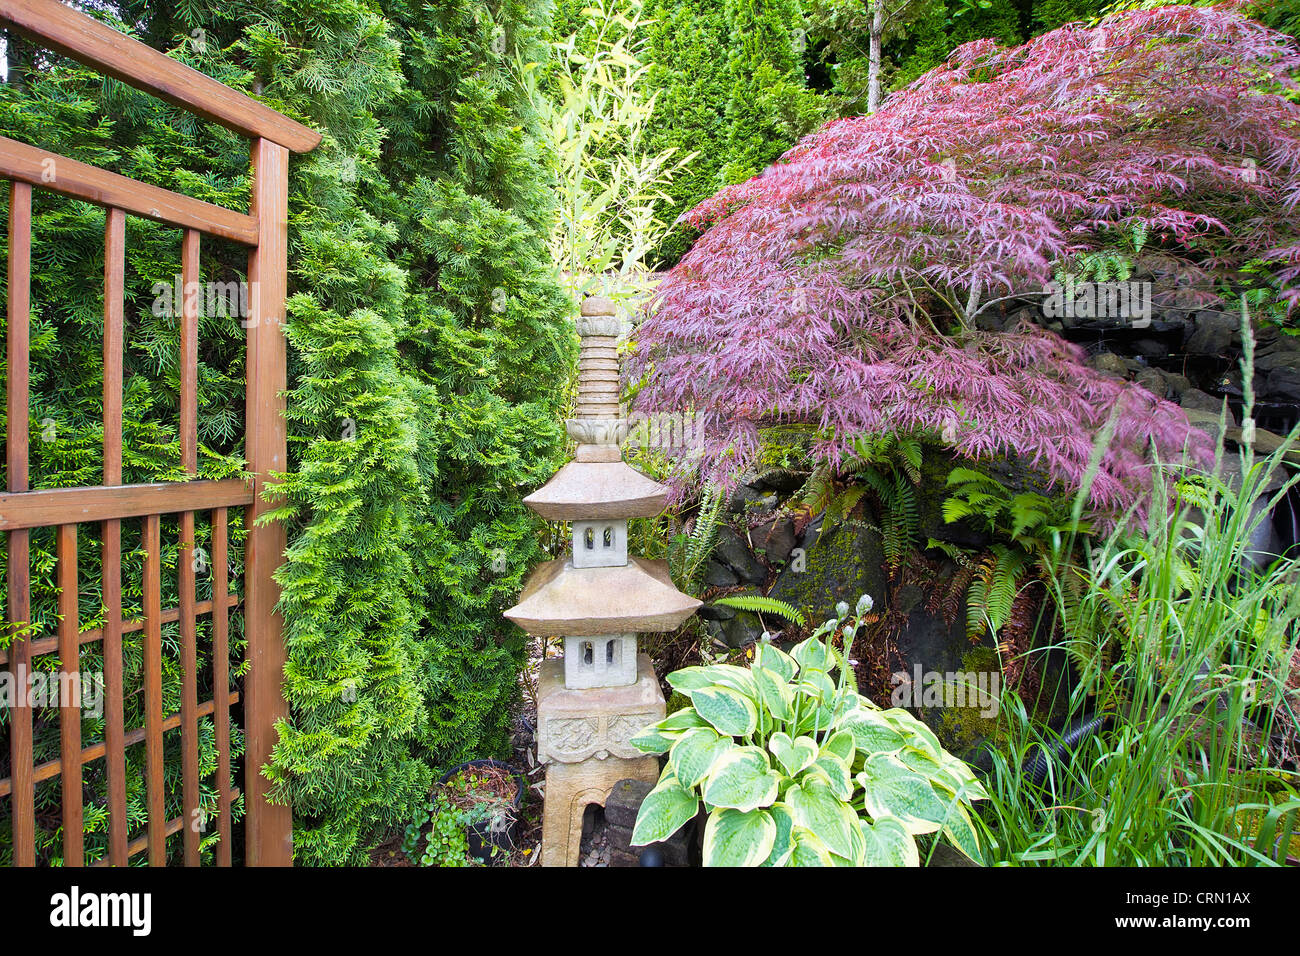 Japanese Inspired Garden With Stone Pagoda Trellis And Maple Tree   Stock  Image